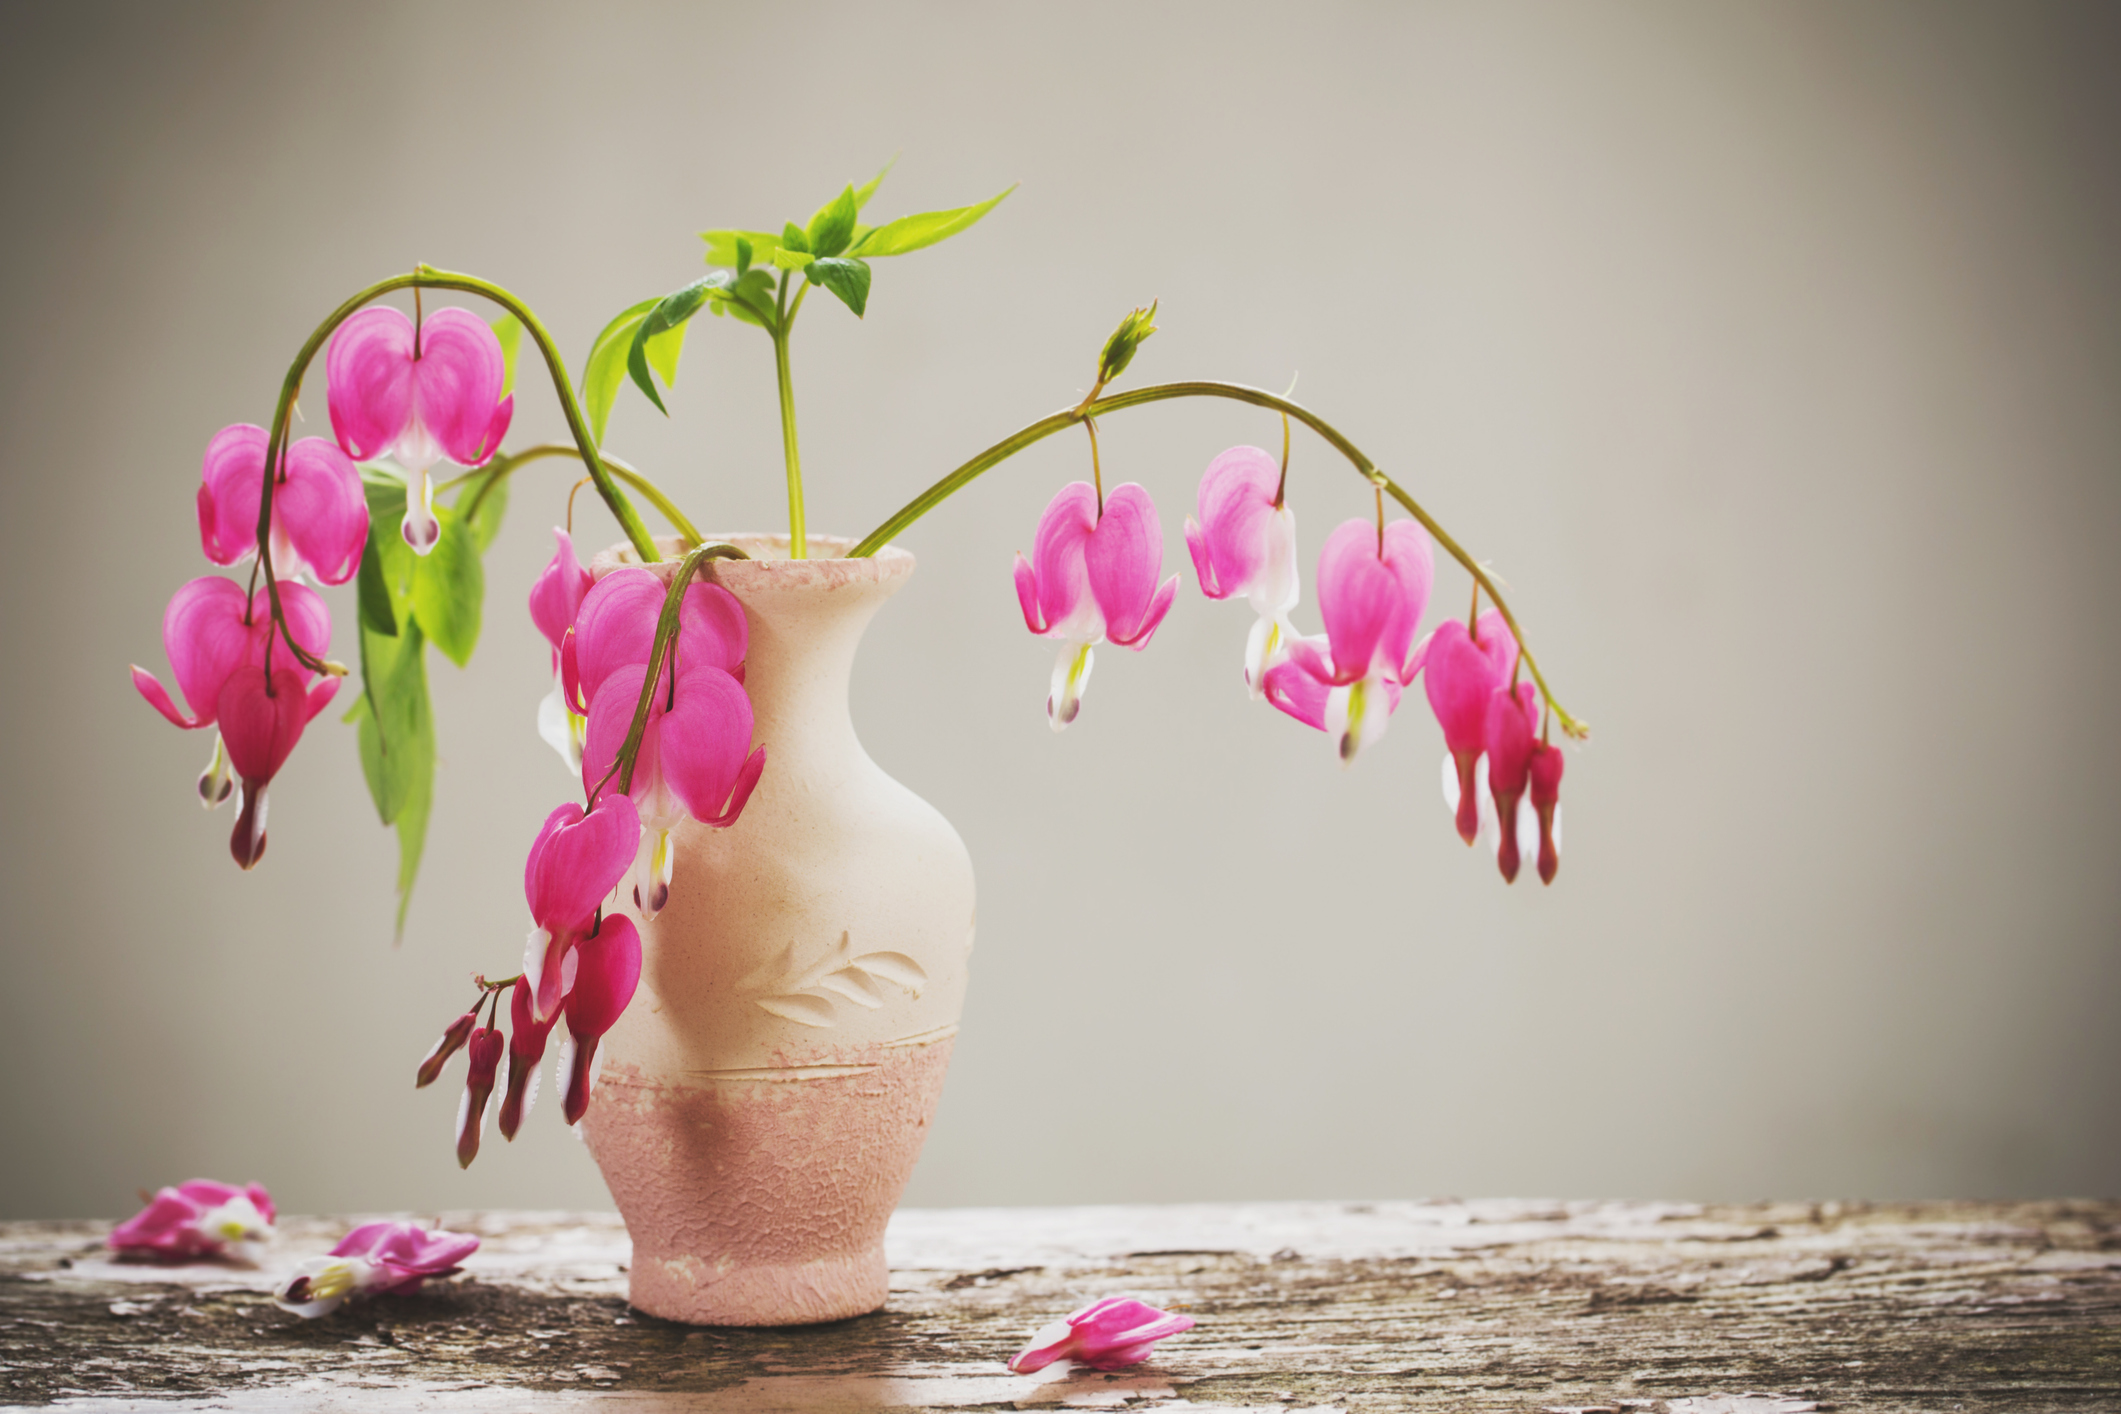 Bleeding heart flowers in vase